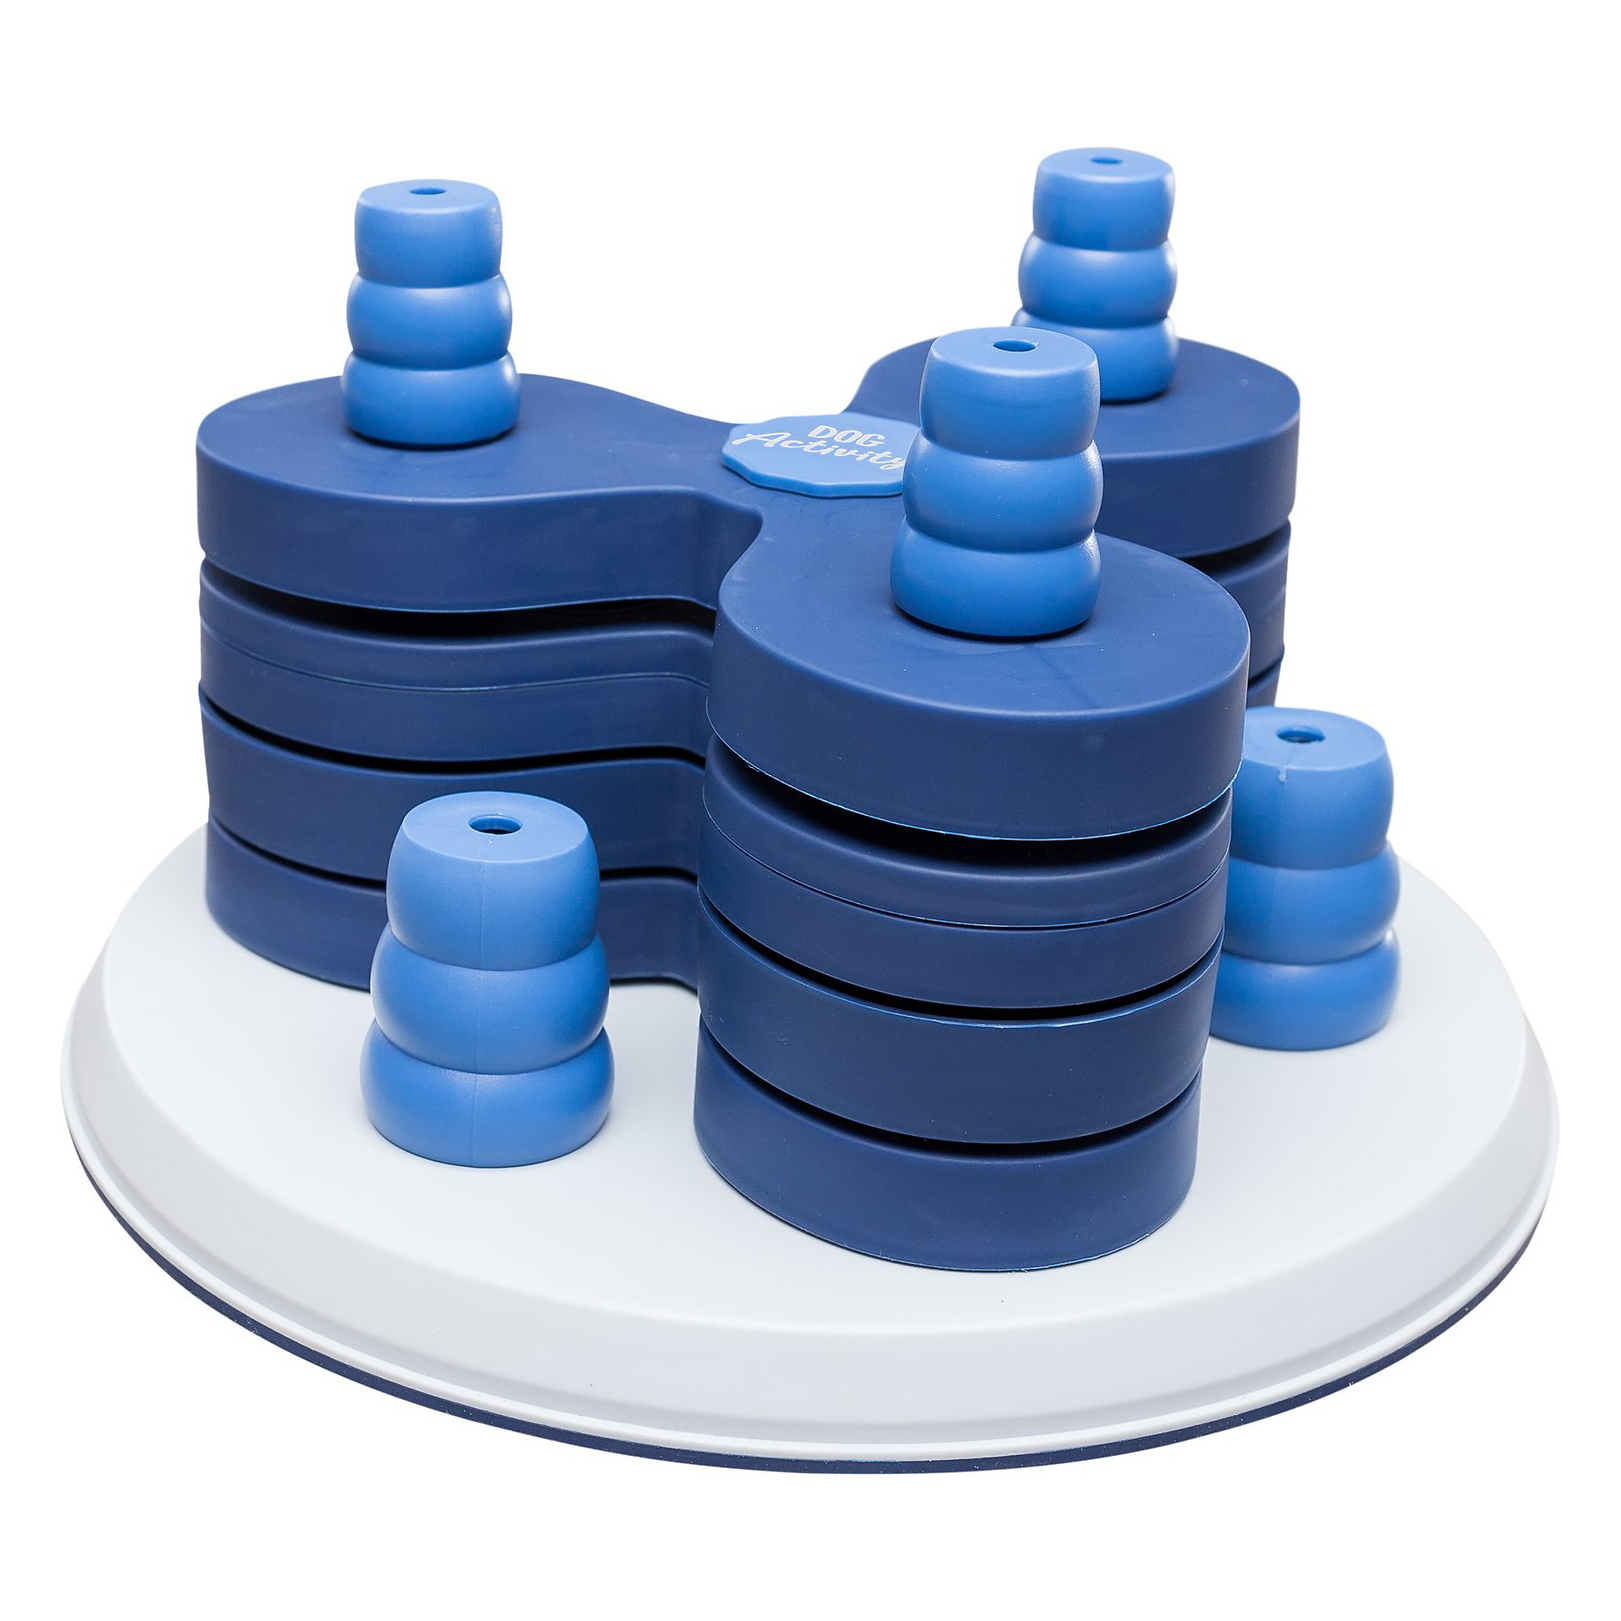 trixie-flower-tower-activity-strategy-game-dog-toy